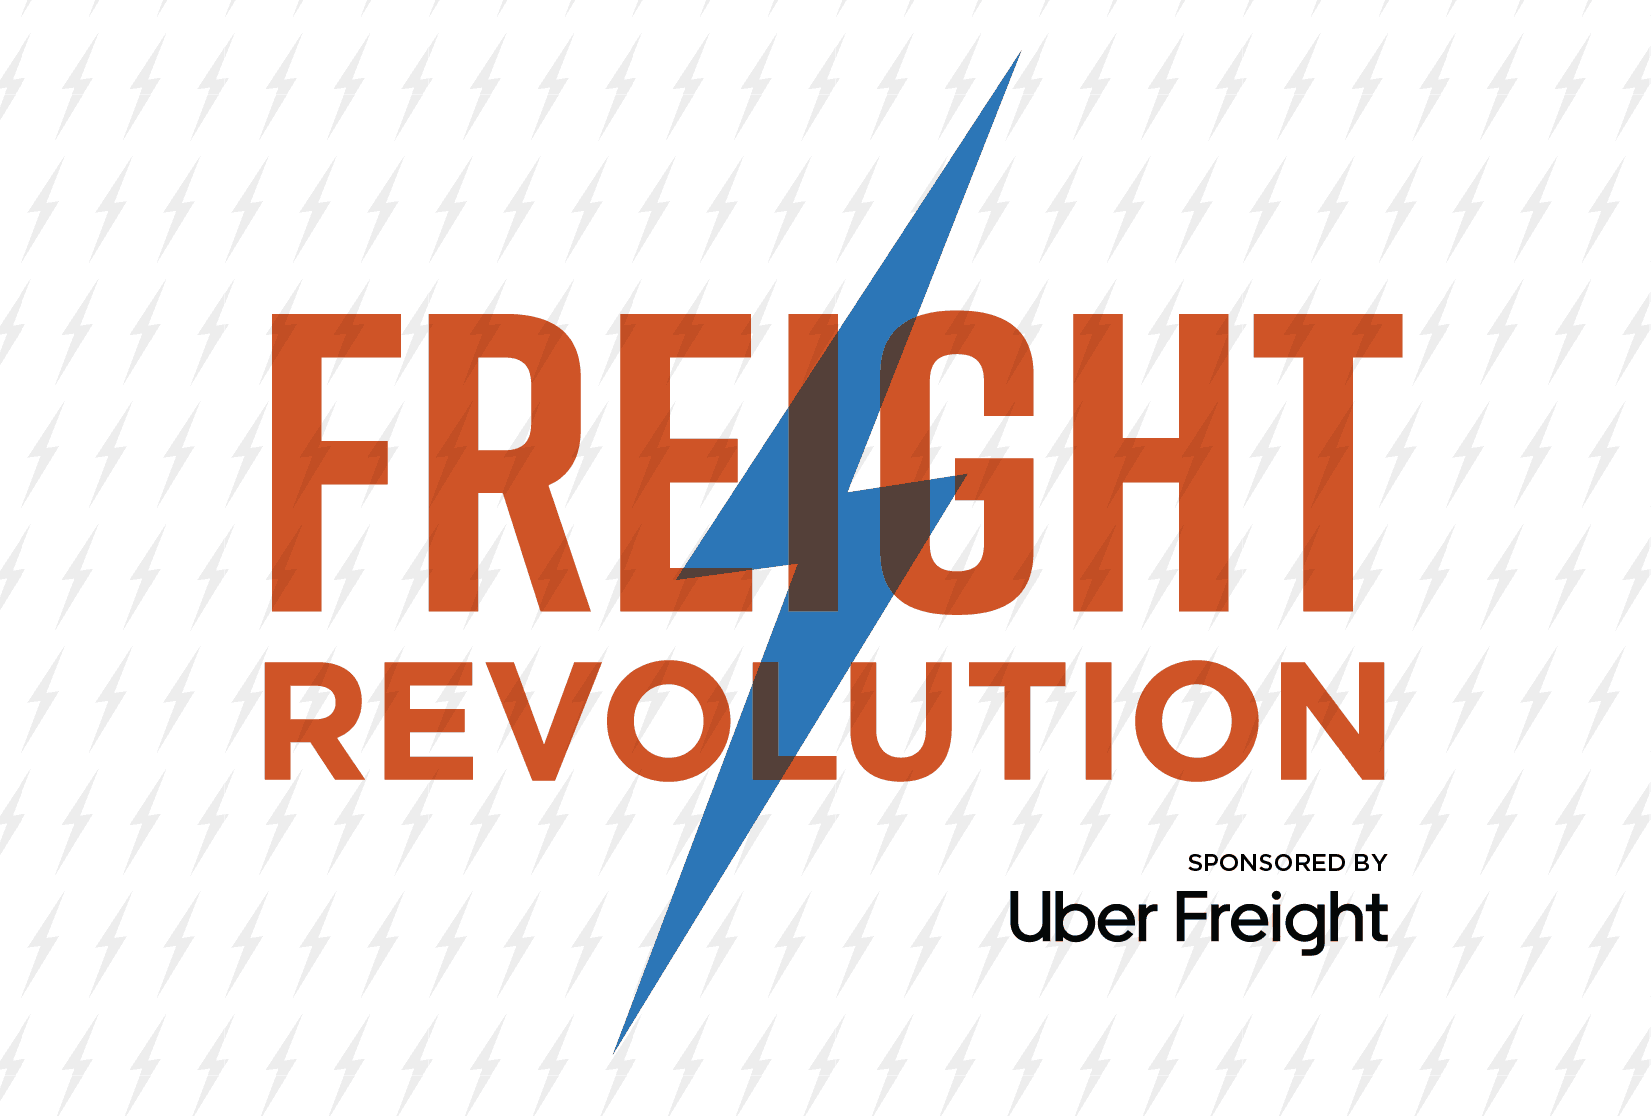 Photo of Our second book, Freight Revolution, now available for free download